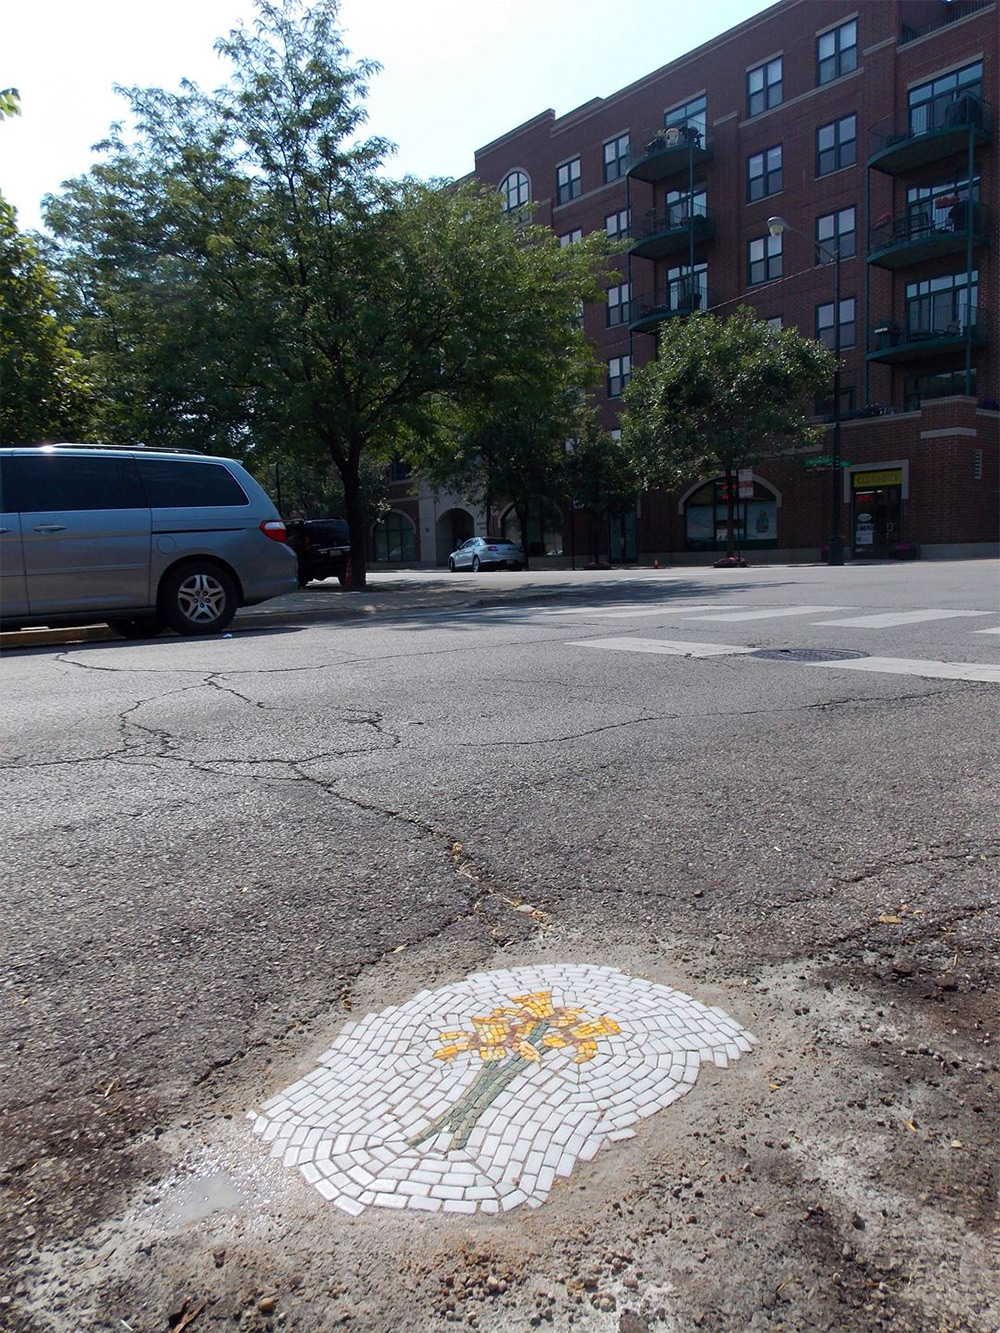 Guerilla Mosaic Artist Now Filling Chicago Potholes with Flowers street art mosaic flowers Chicago